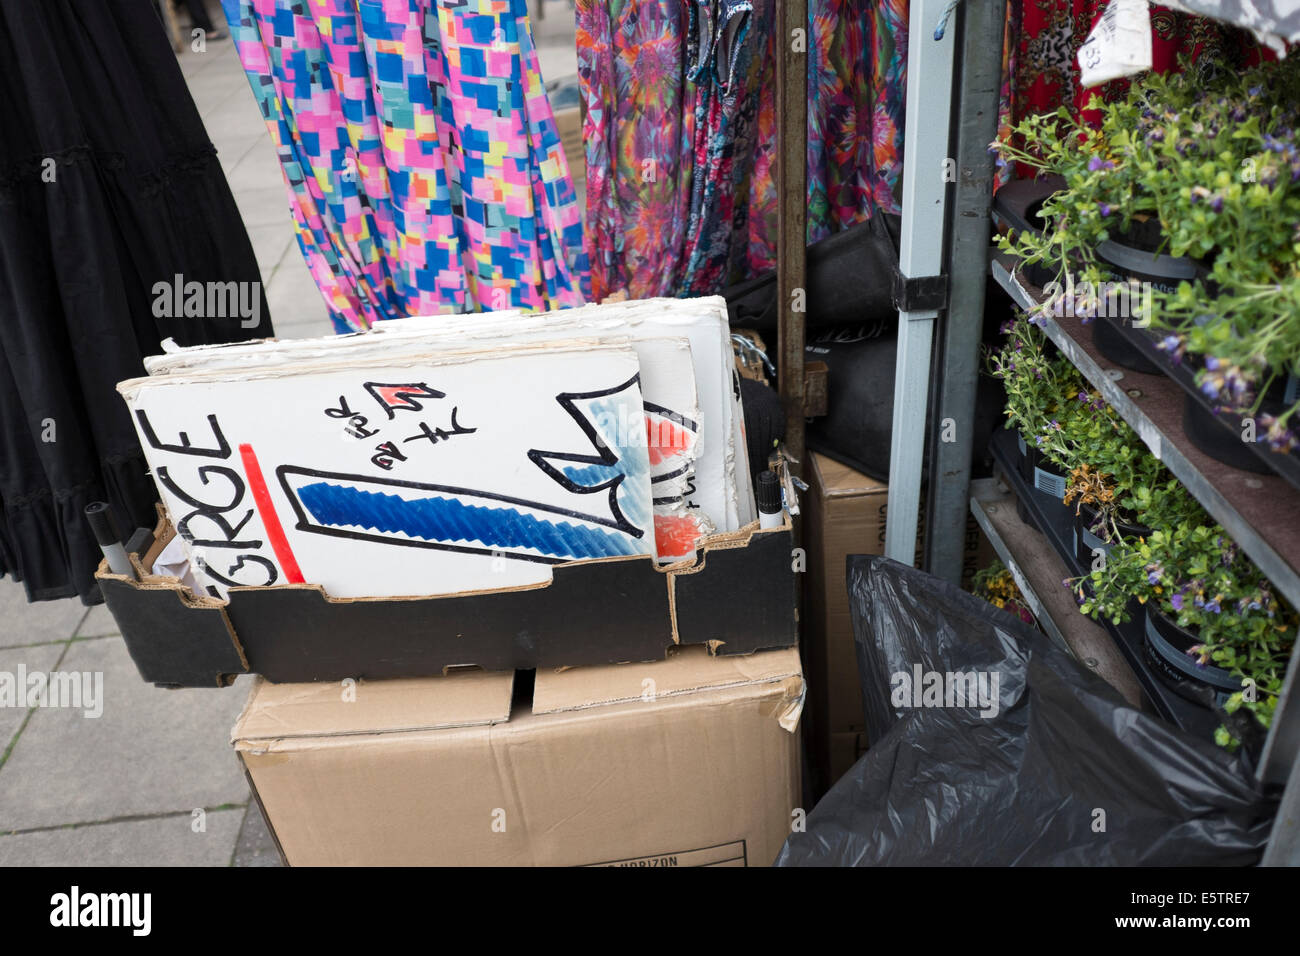 Price Signs Street Market Stall Booth Selling hand written - Stock Image